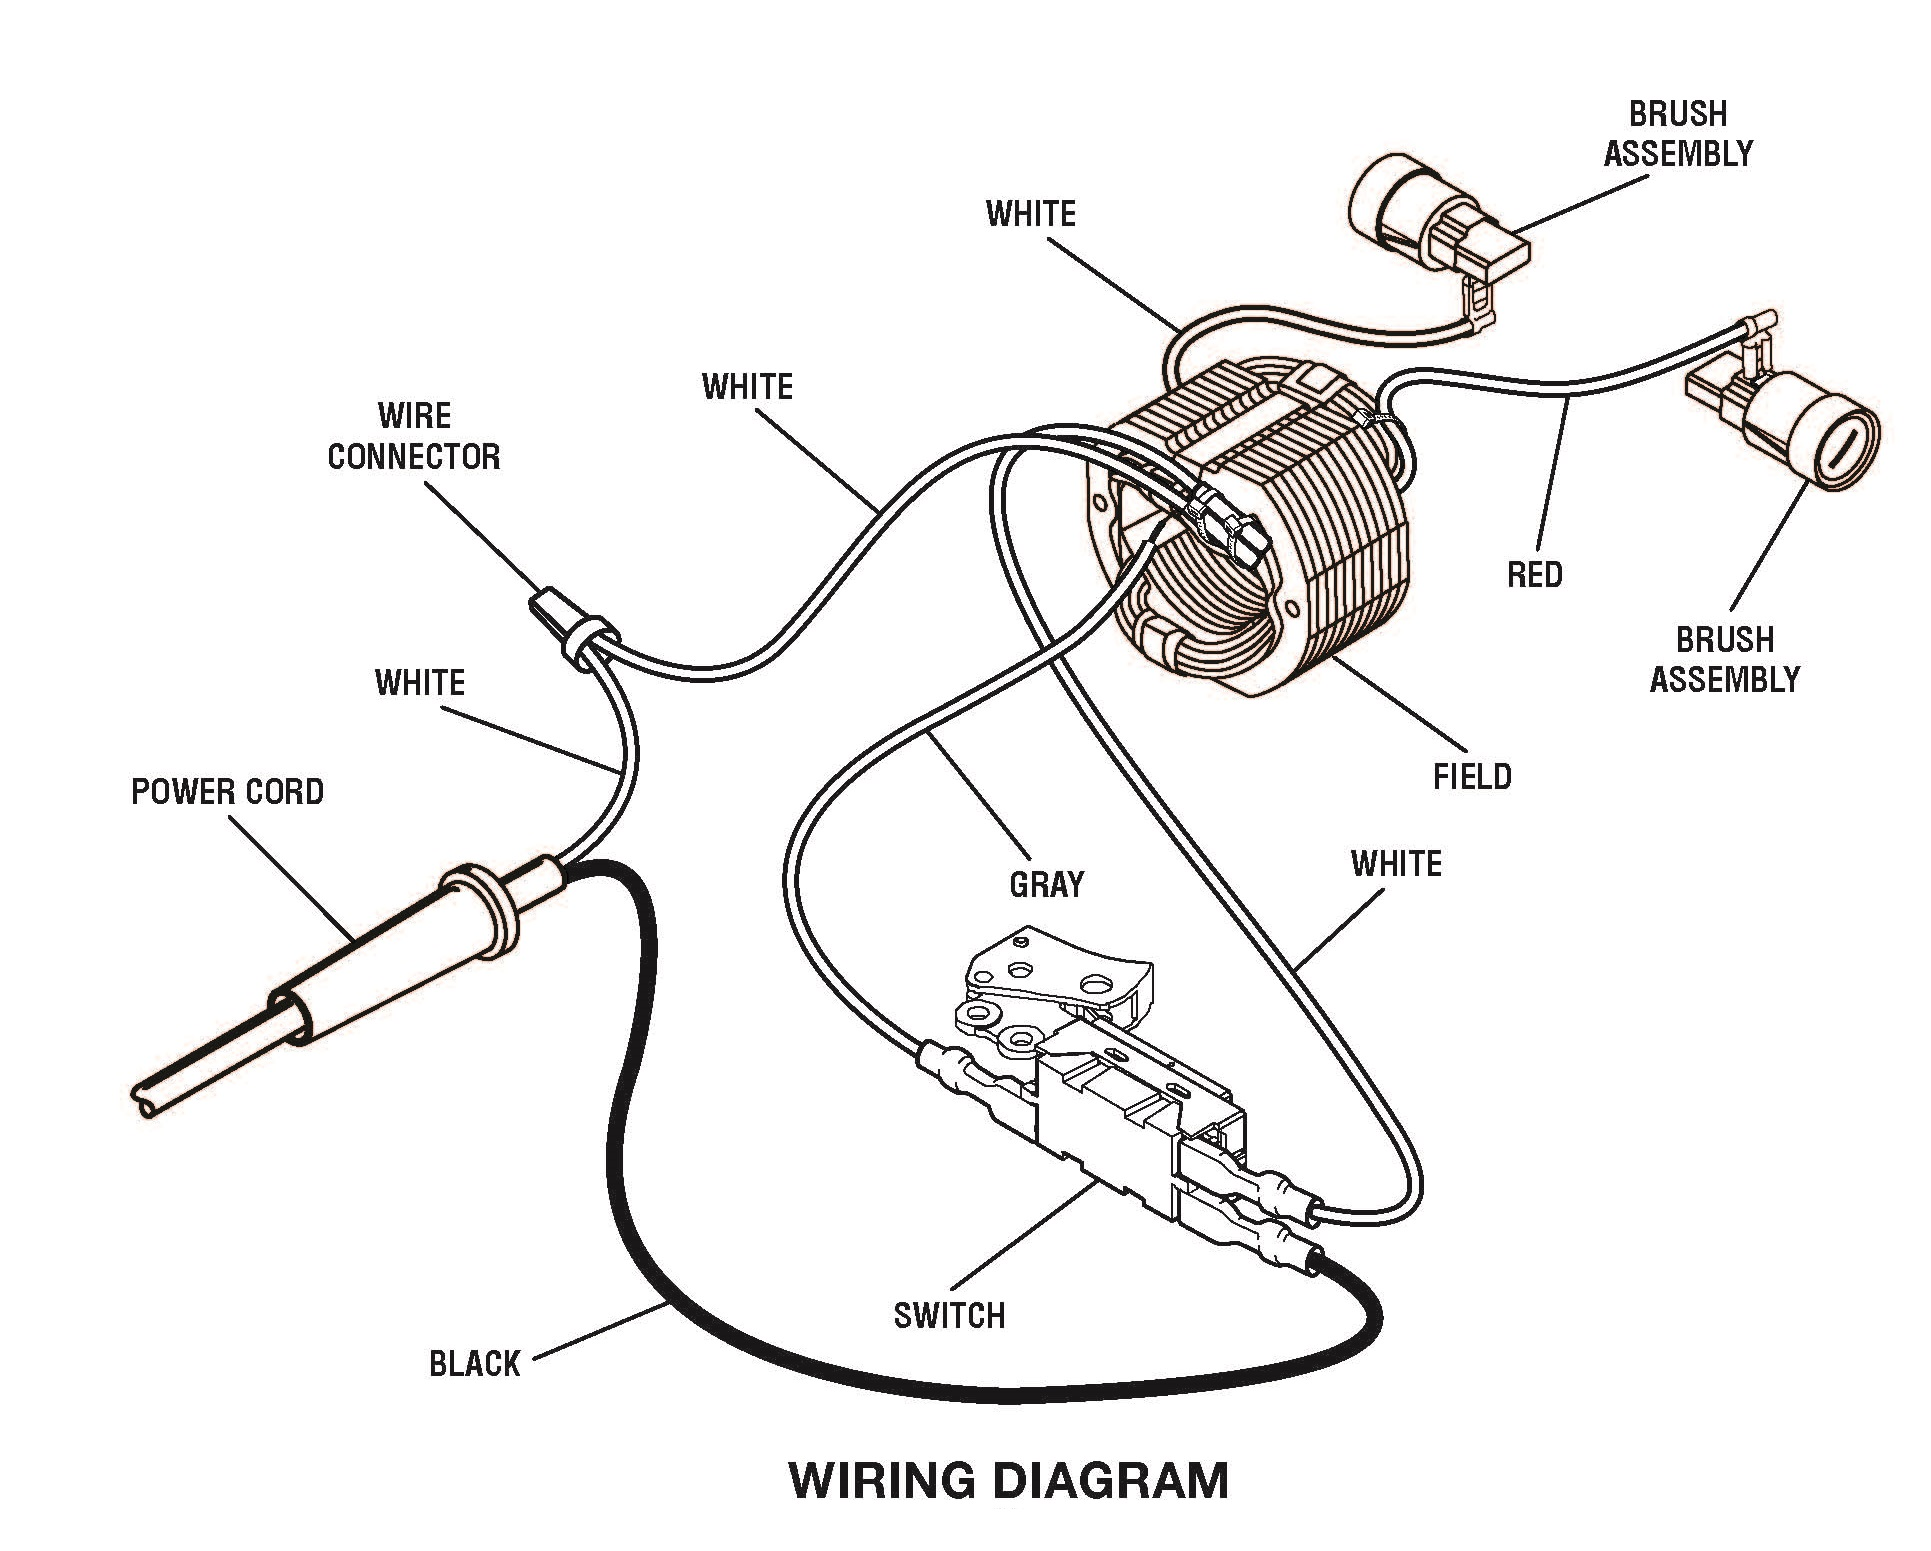 Wiring Diagram For Power Tool Switch